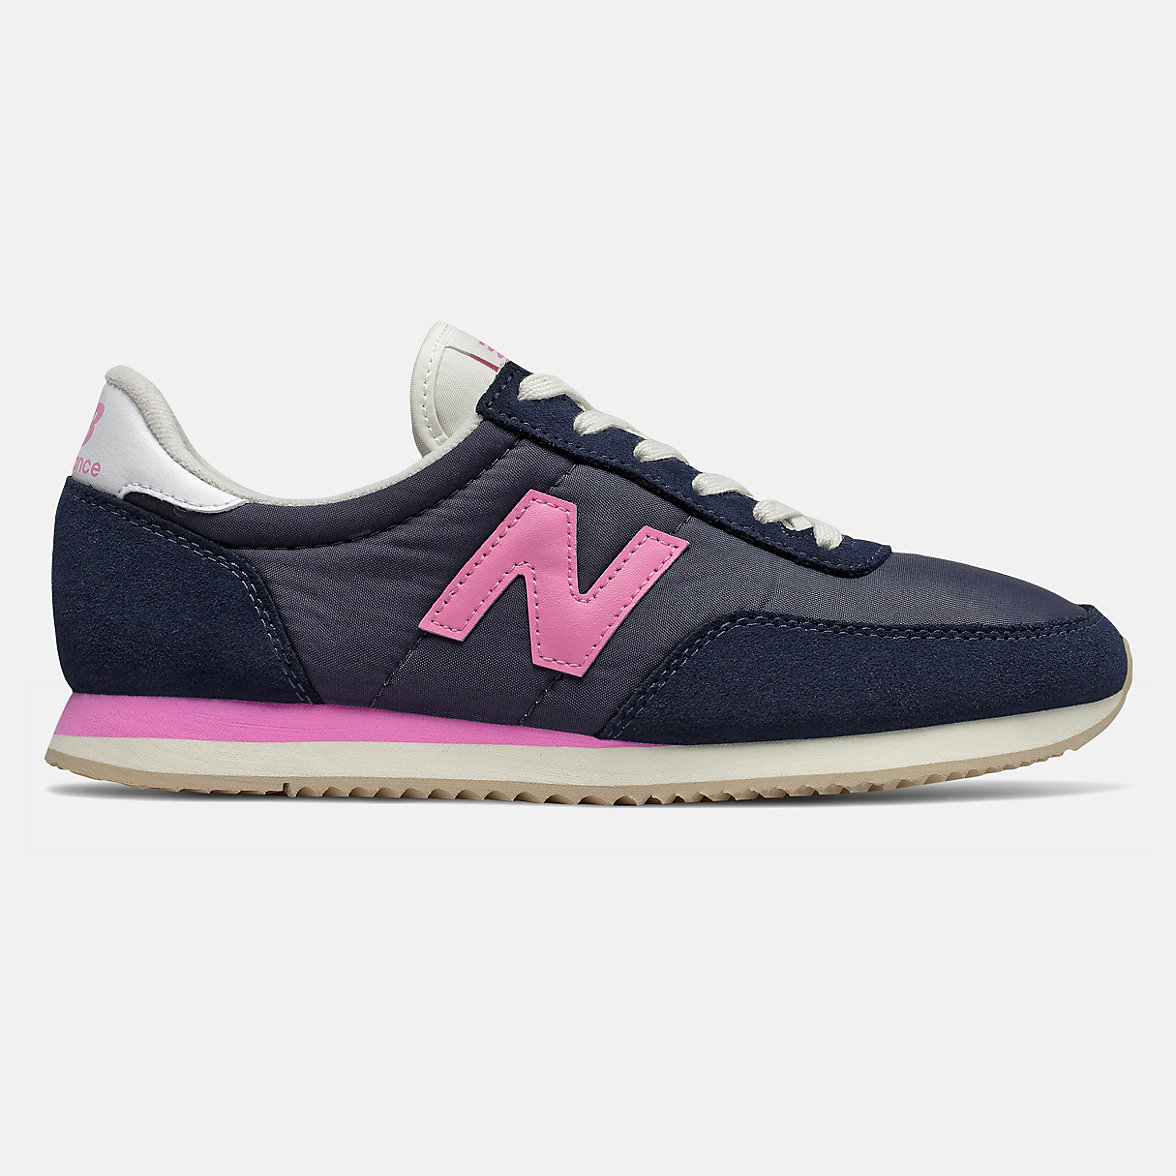 JOE'S NEW BALANCE OUTLET UP TO 60% OFF! SNEAKERS AS LOW AS $29.99!